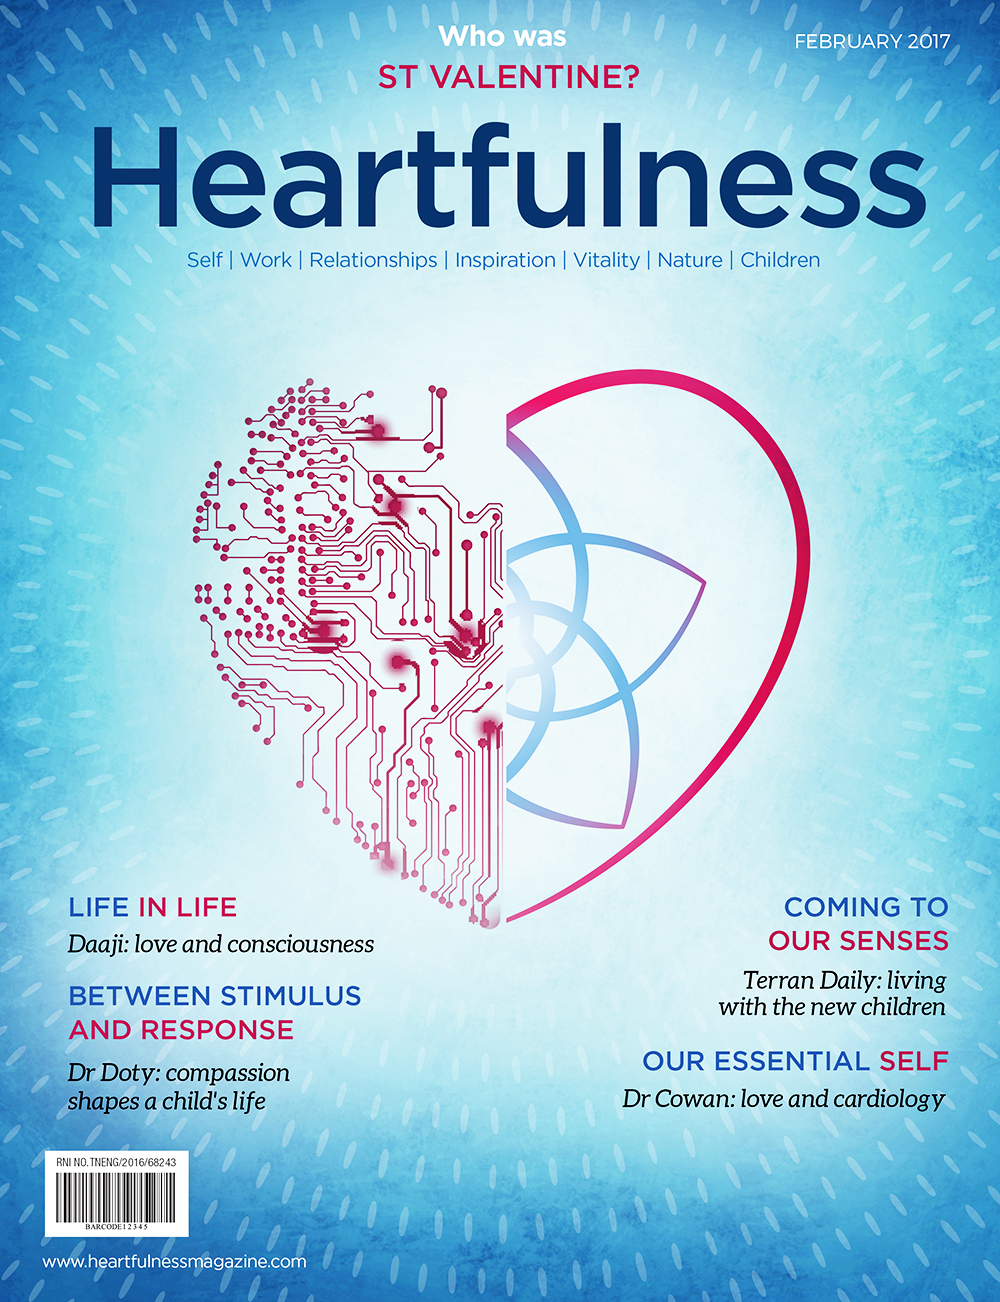 Heartfulness eMagazine - February 2017